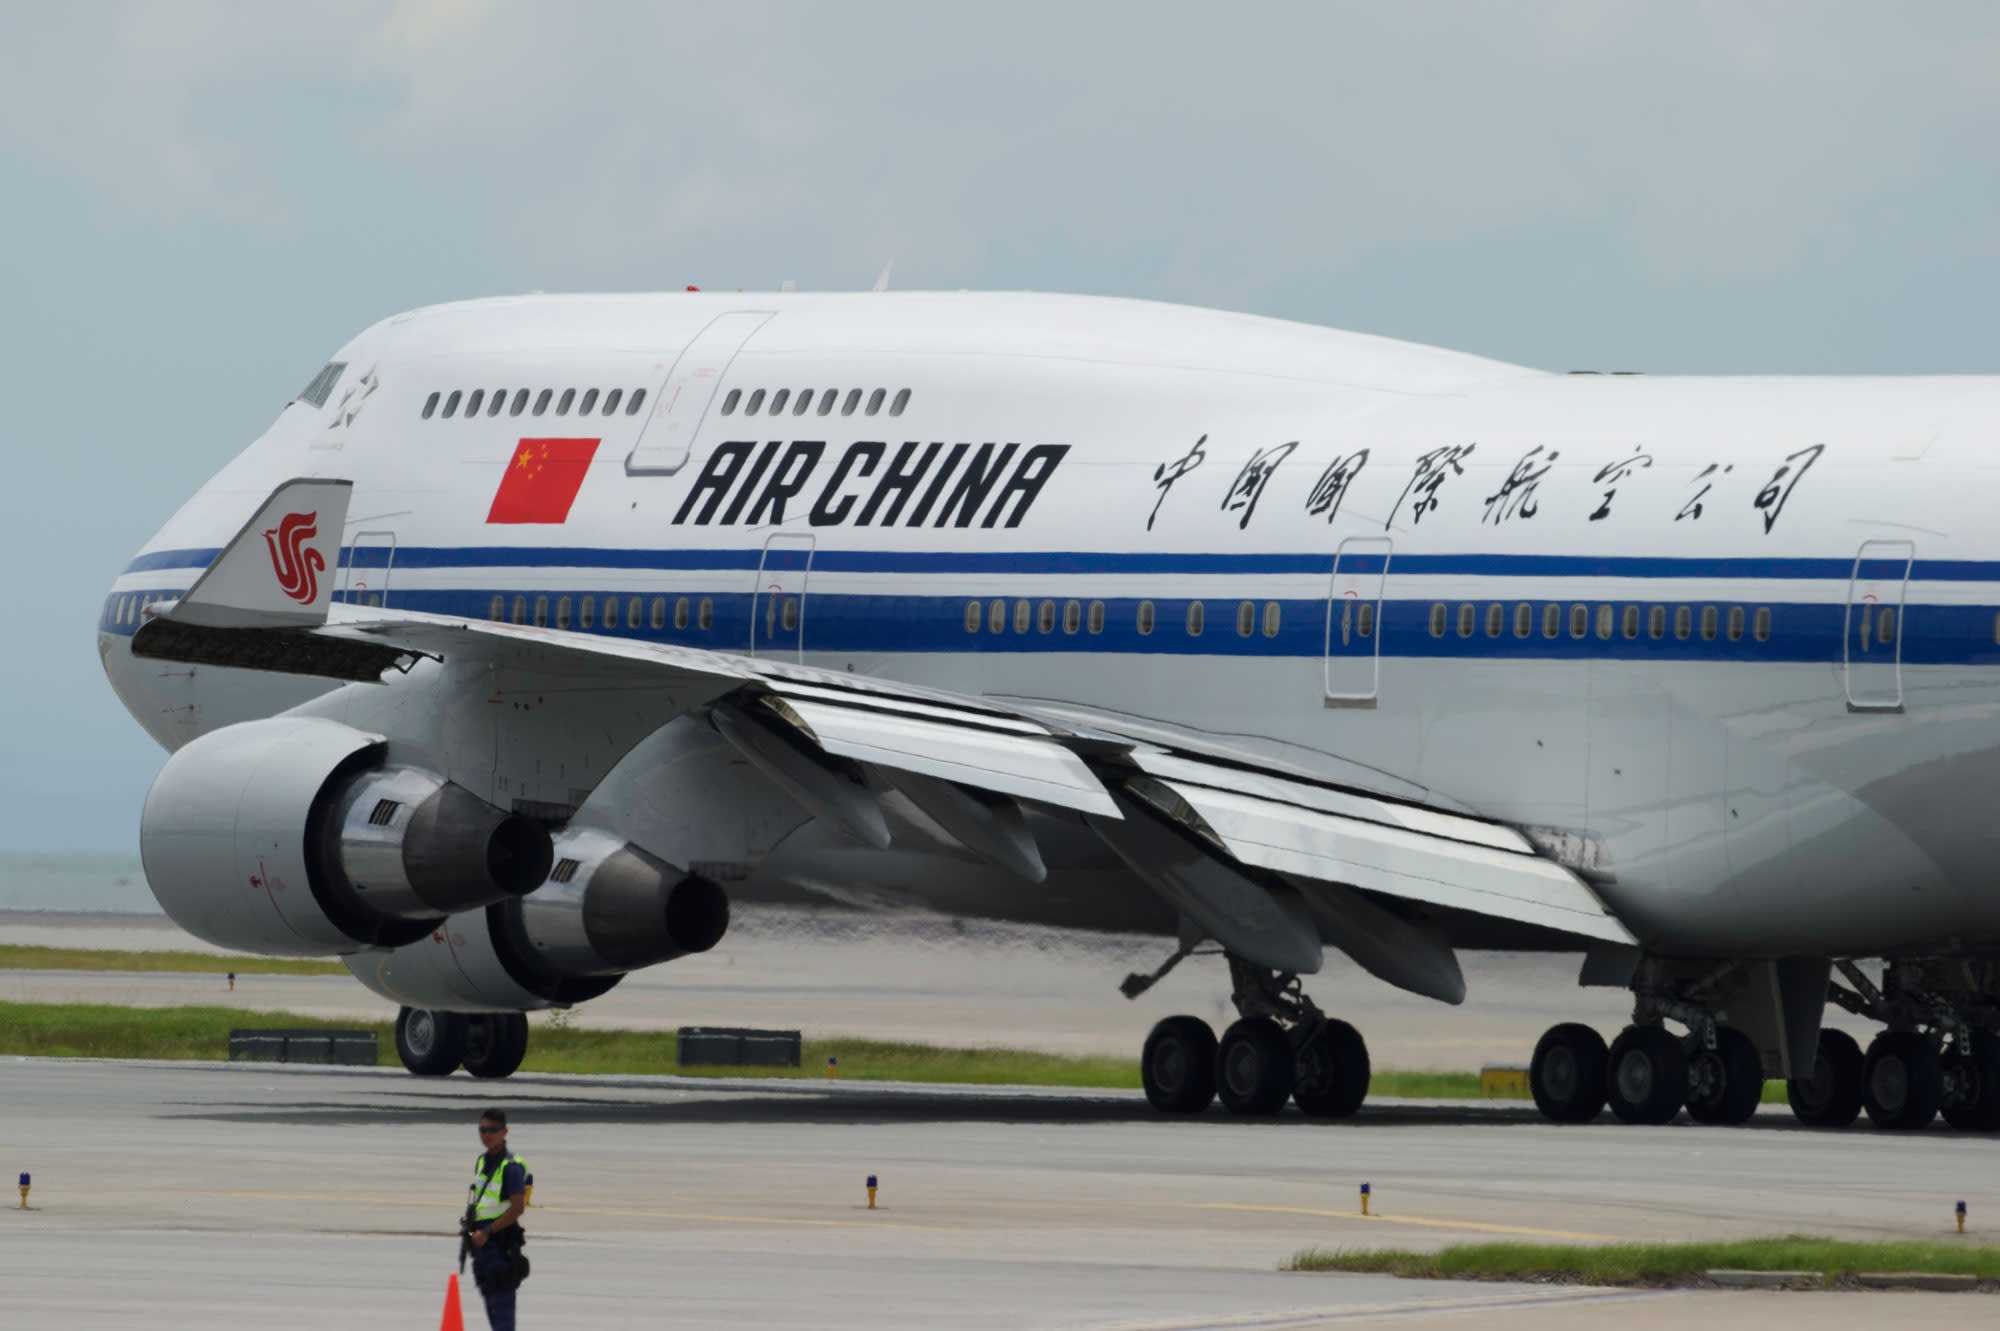 Air China reportedly asks Boeing for compensation over aircraft grounding